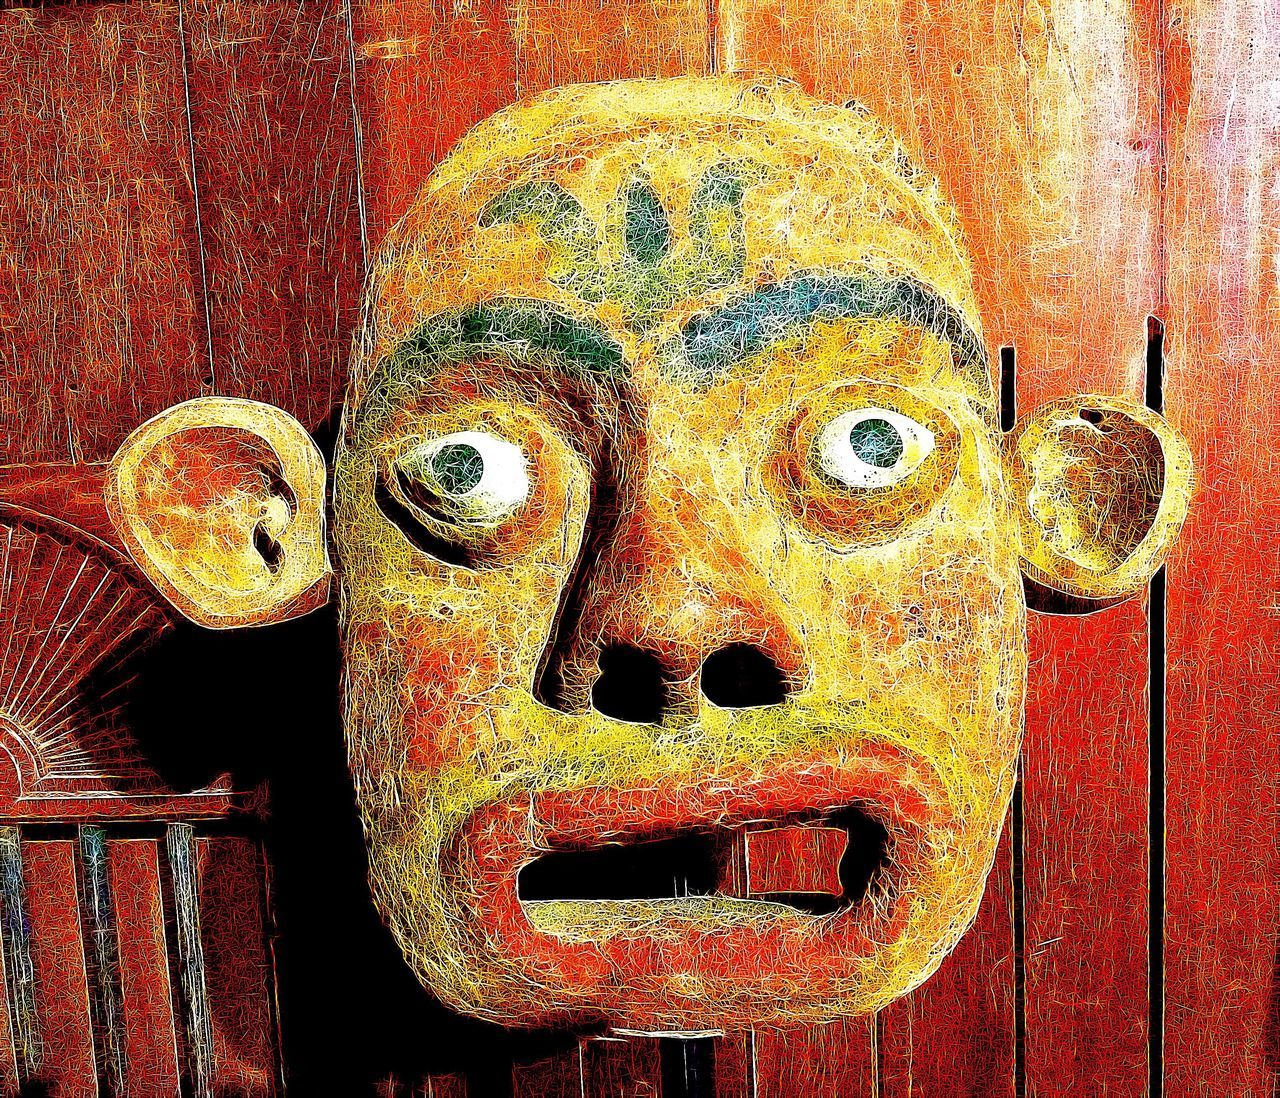 Mask Wood - Material Sculpture Art And Craft Intriguing